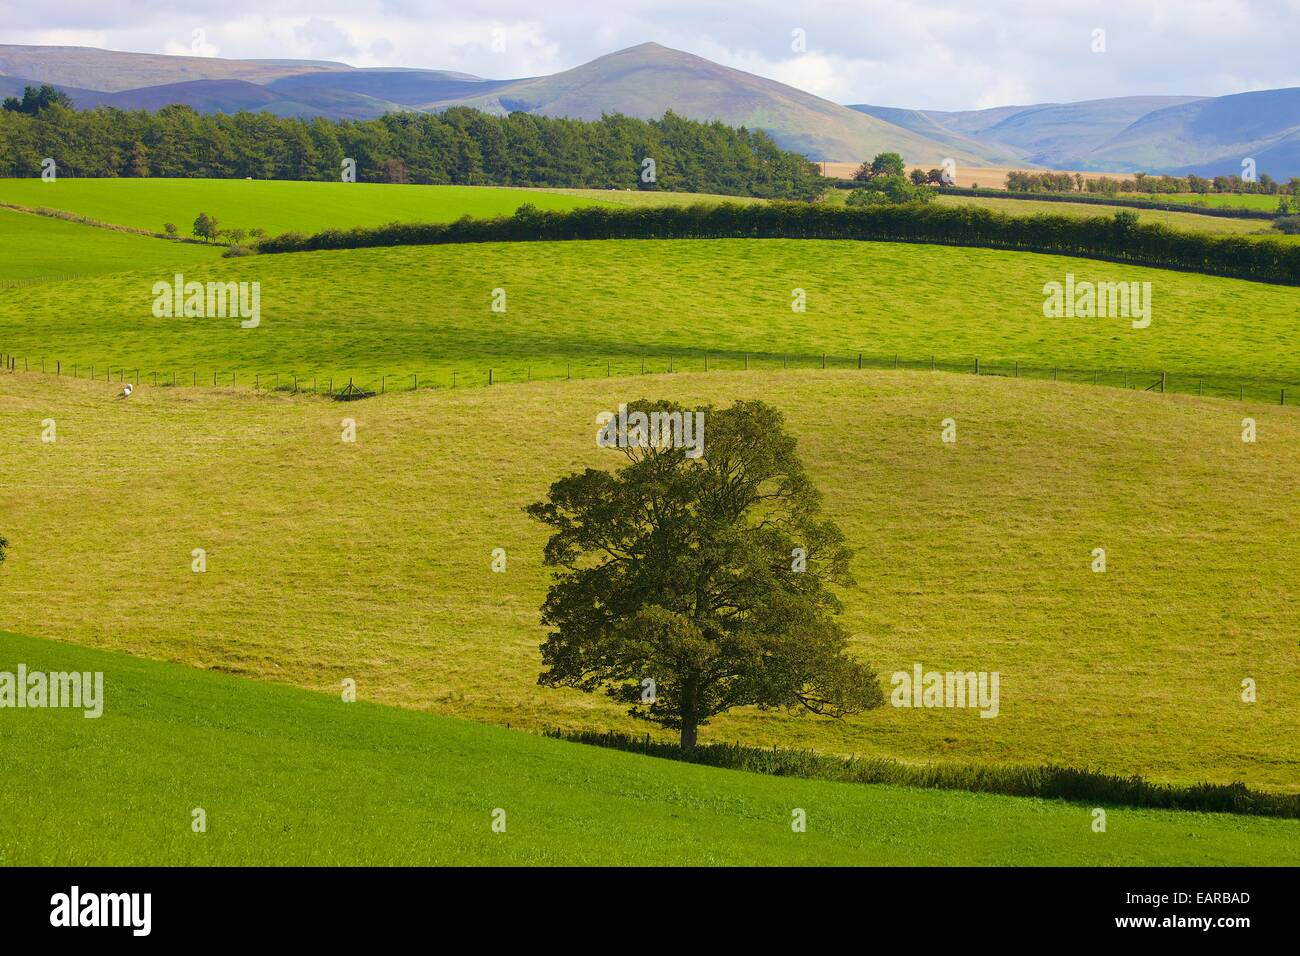 Tree in field below Dufton Pike. Kirkby Thore, Eden Valley, Cumbria, Settle to Carlisle Railway Line, England, UK. - Stock Image